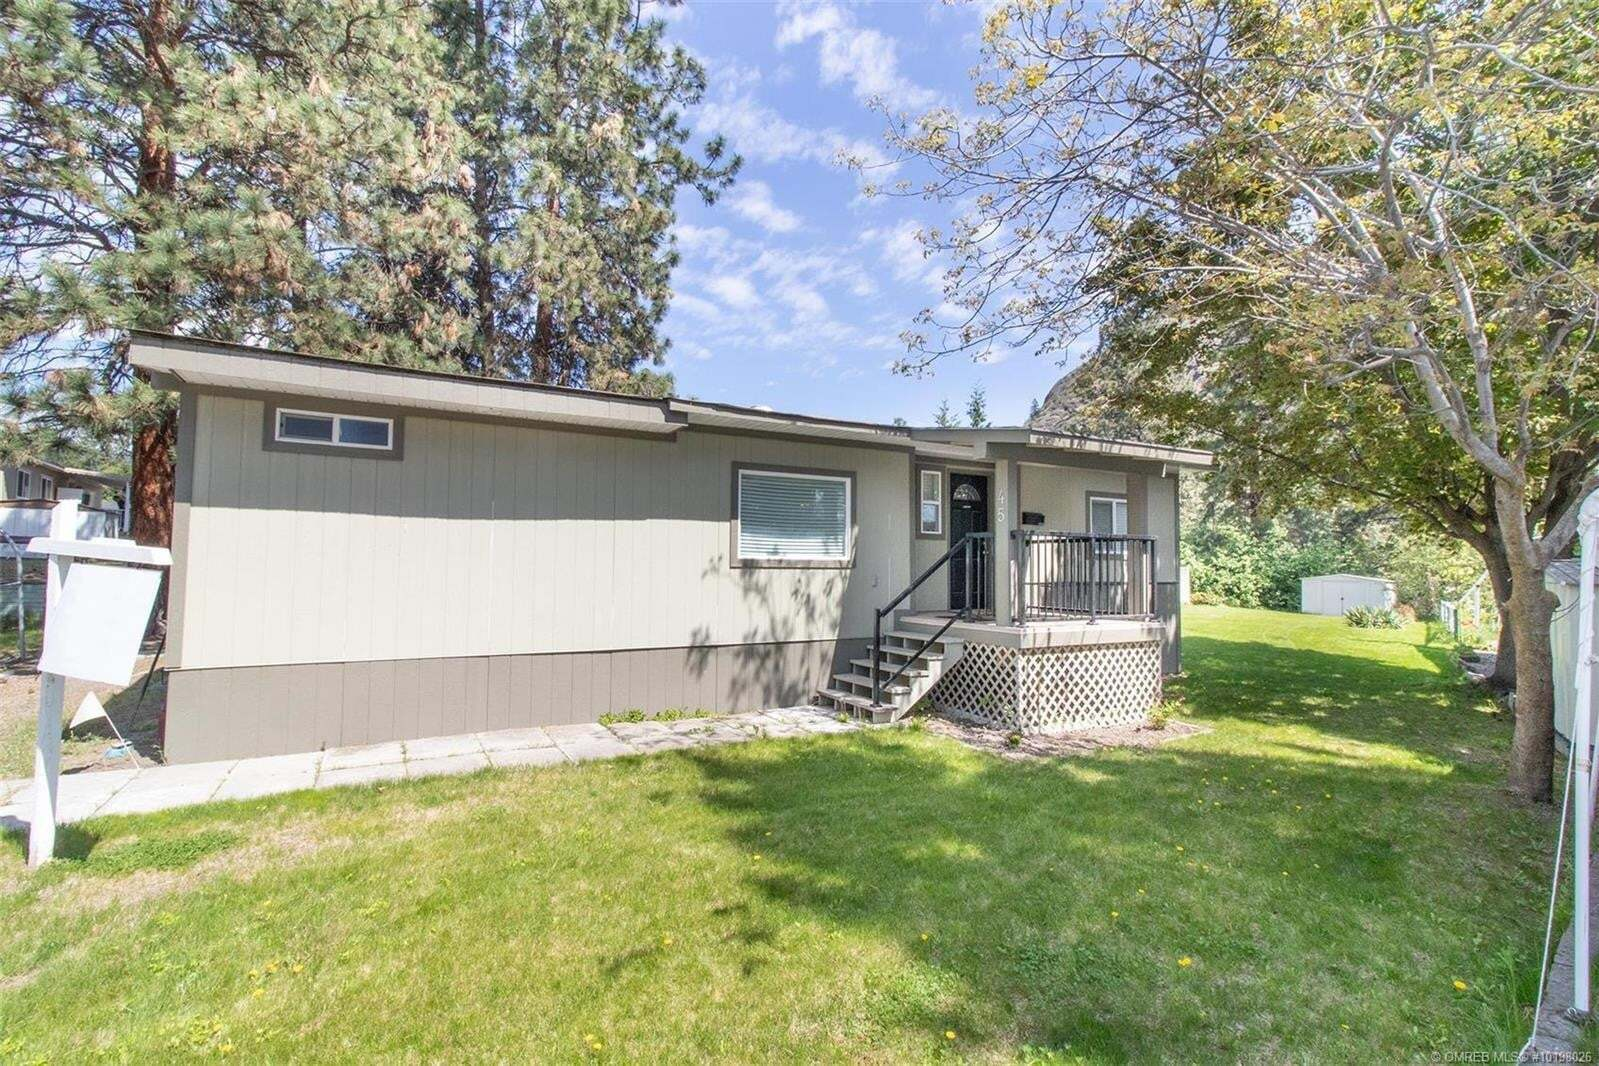 Residential property for sale at 1999 97 Hy South West Kelowna British Columbia - MLS: 10198026